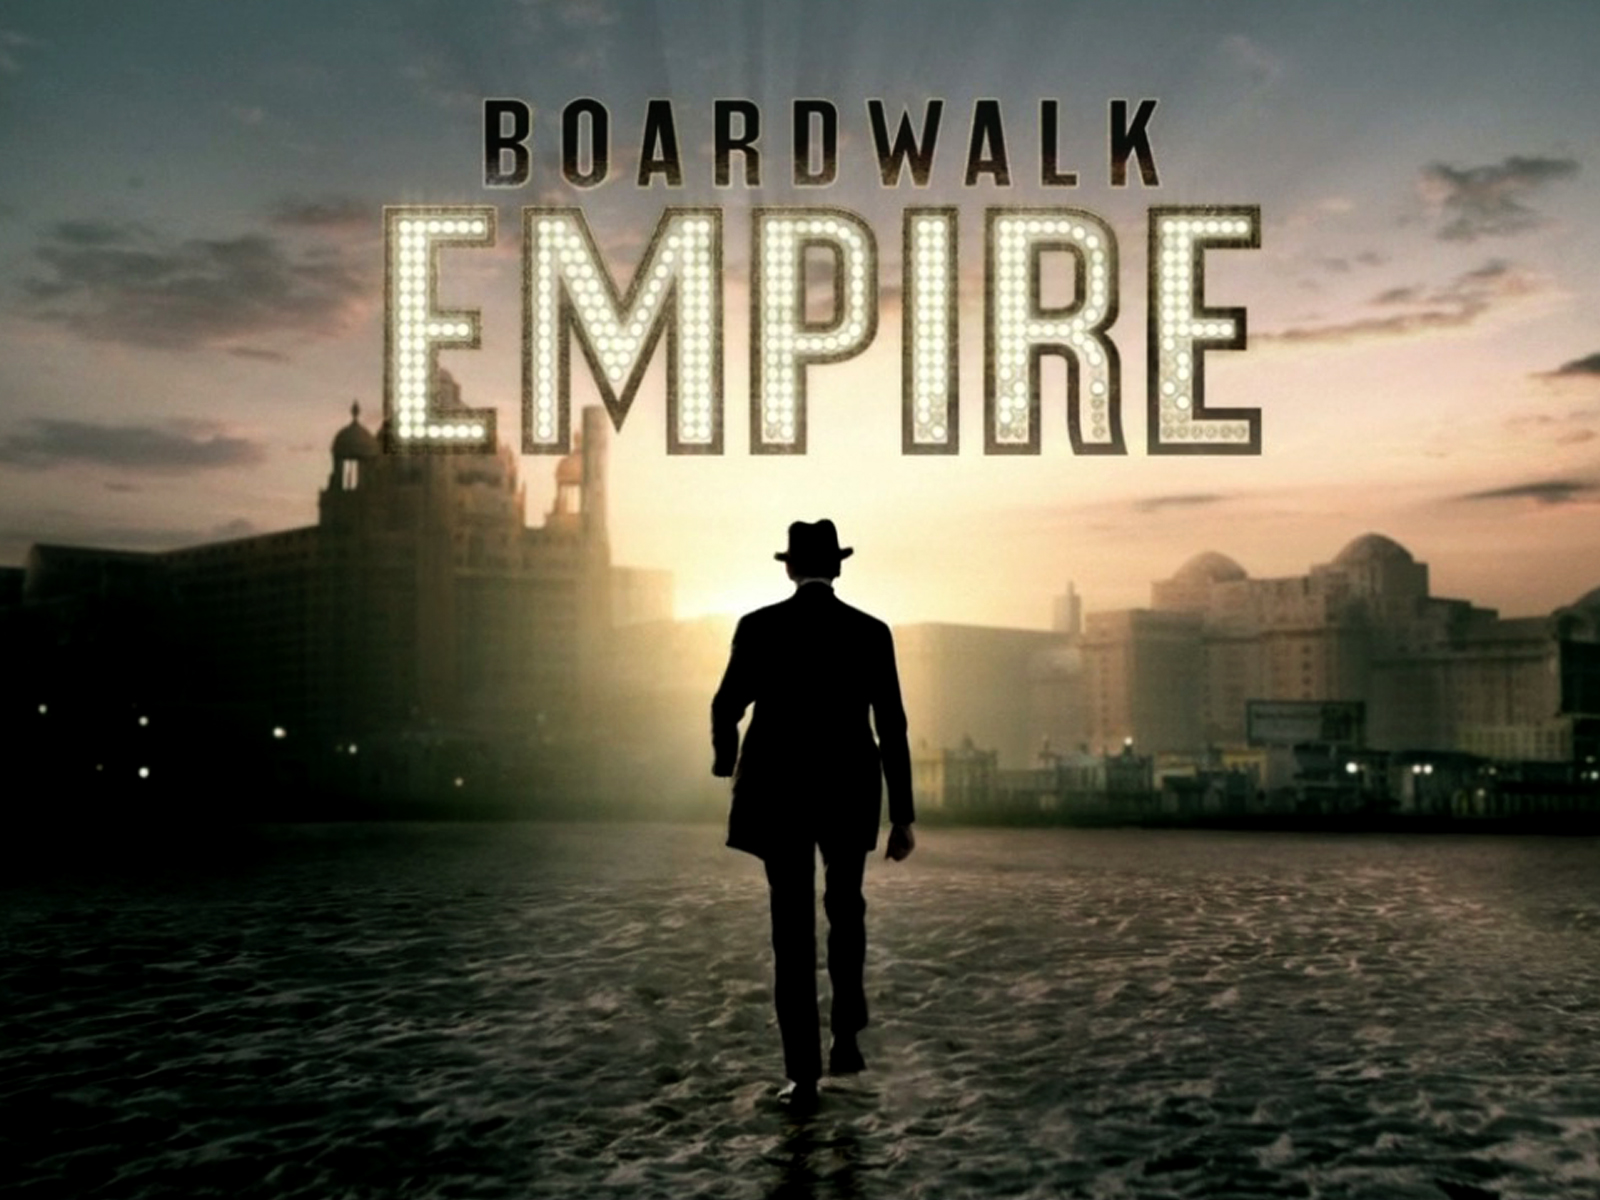 http://2.bp.blogspot.com/-MVXaKYFunRw/UH2uKnN8HeI/AAAAAAAAFfA/nOtB5jsR7LE/s1600/Boardwalk-Empire-HD-Wallpaper_Vvallpaper.Net.jpg